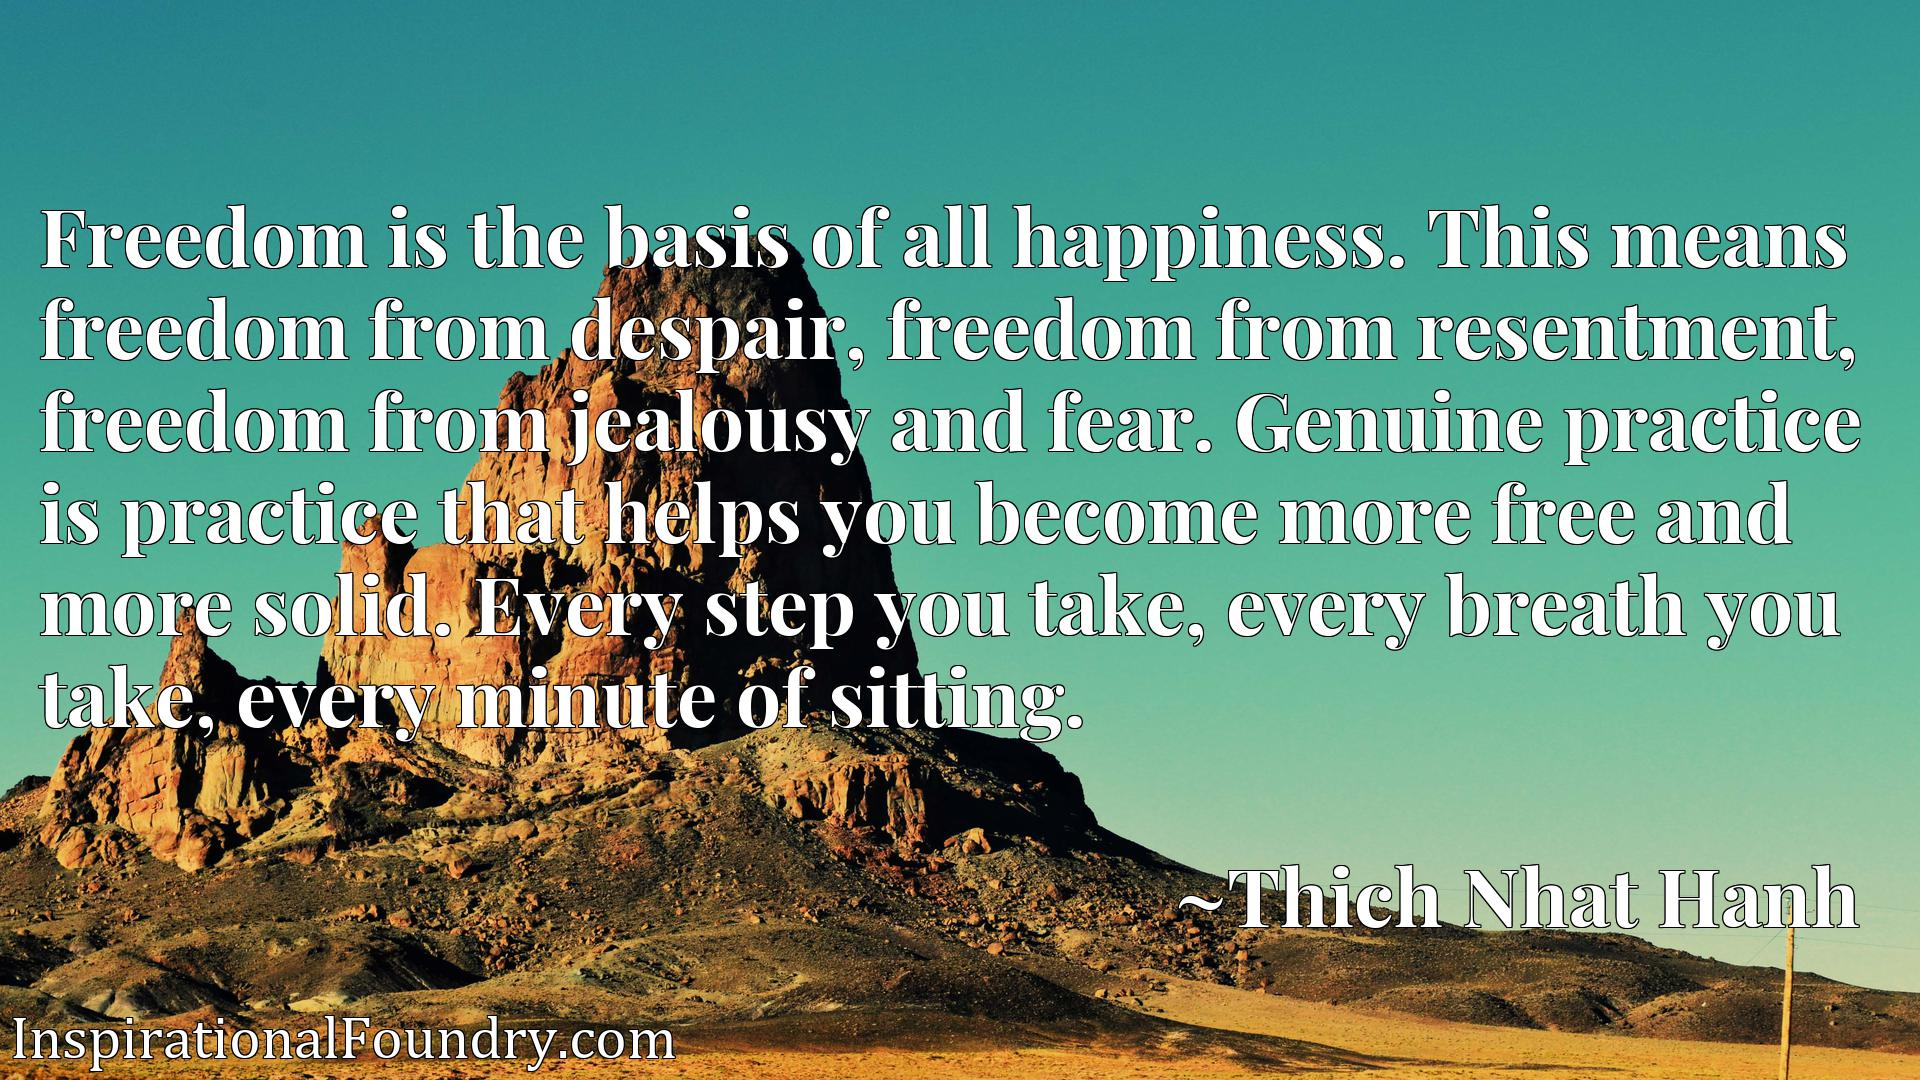 Freedom is the basis of all happiness. This means freedom from despair, freedom from resentment, freedom from jealousy and fear. Genuine practice is practice that helps you become more free and more solid. Every step you take, every breath you take, every minute of sitting.